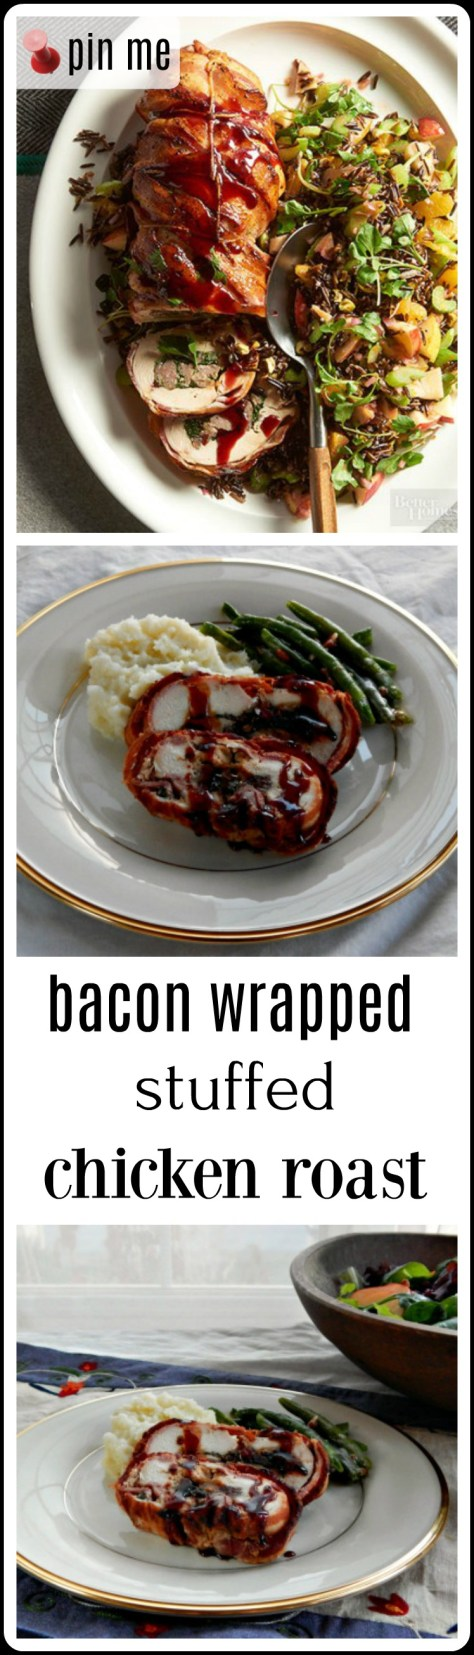 Bacon Wrapped Stuffed Chicken Roast: Chicken breast stuffed with sausage, cheese, spinach and port soaked dried cherries, all rolled up and wrapped in bacon!